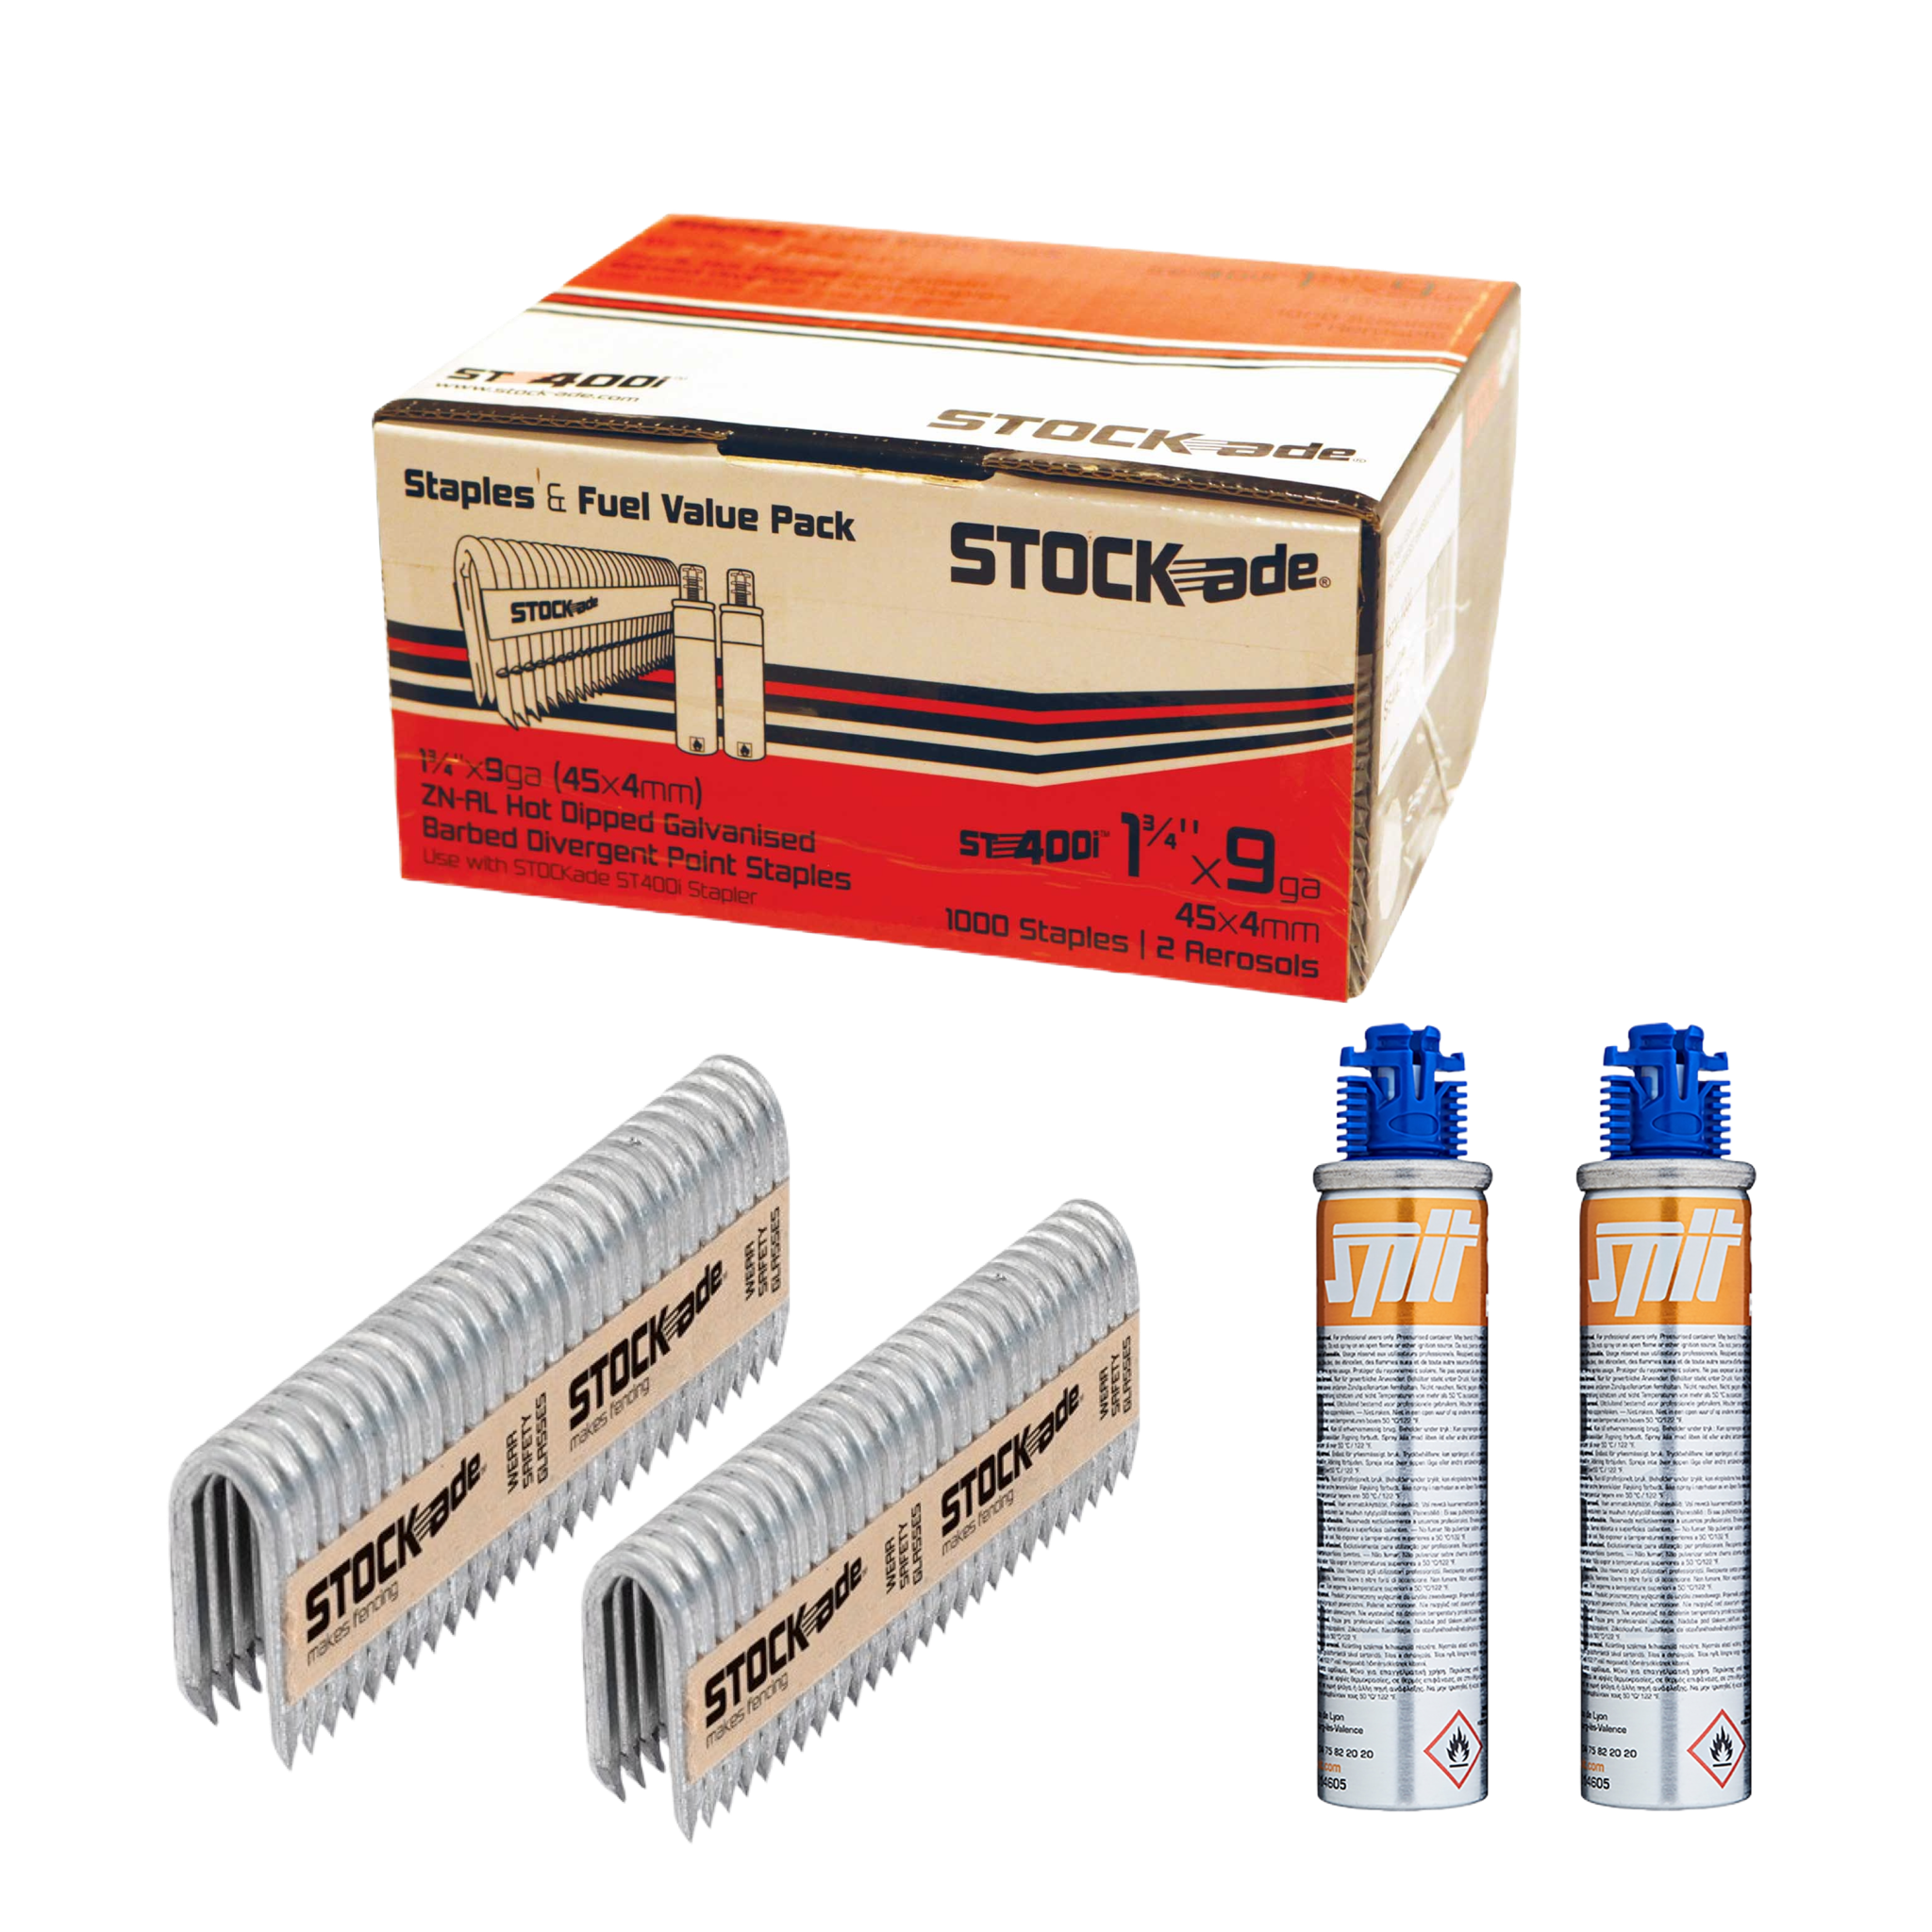 """Stockade 1 3/4"""" STOCK-ADE ST400i BARBED STAPLES / BOX WITH FUEL PACK"""